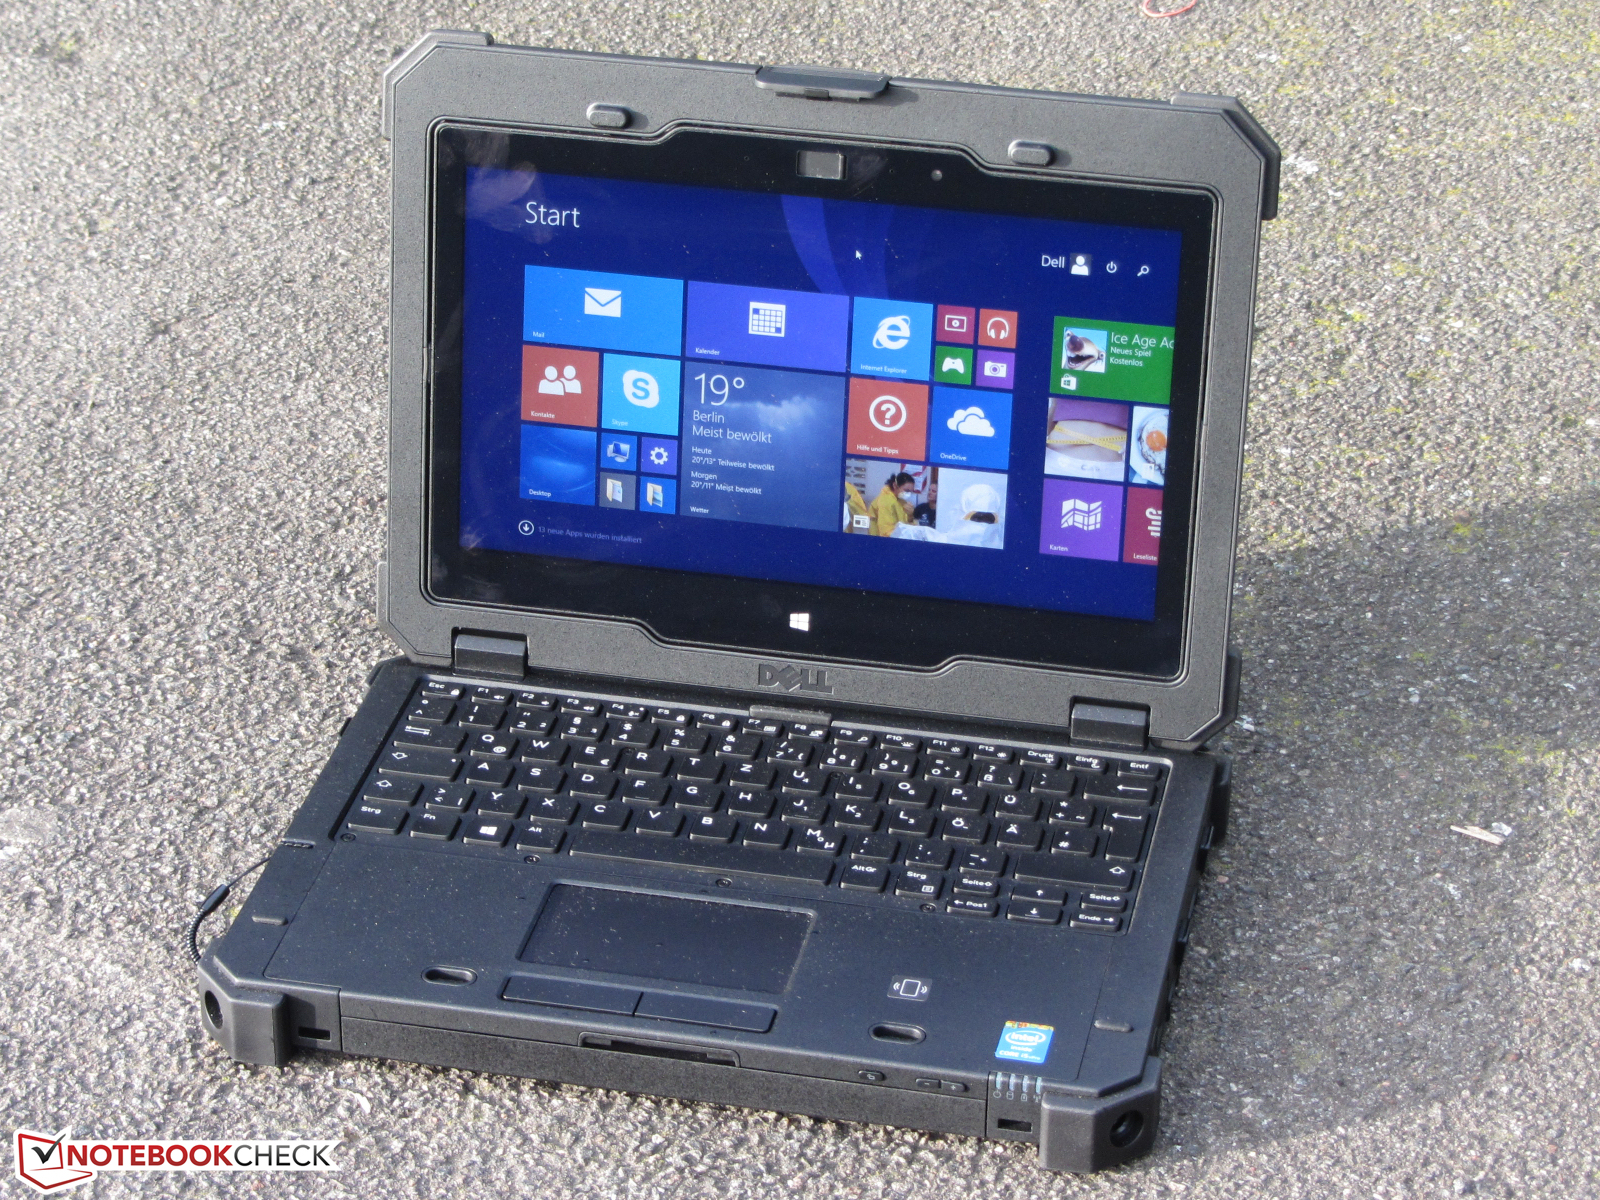 Dell Latitude 12 Rugged Extreme Notebookcheck Info